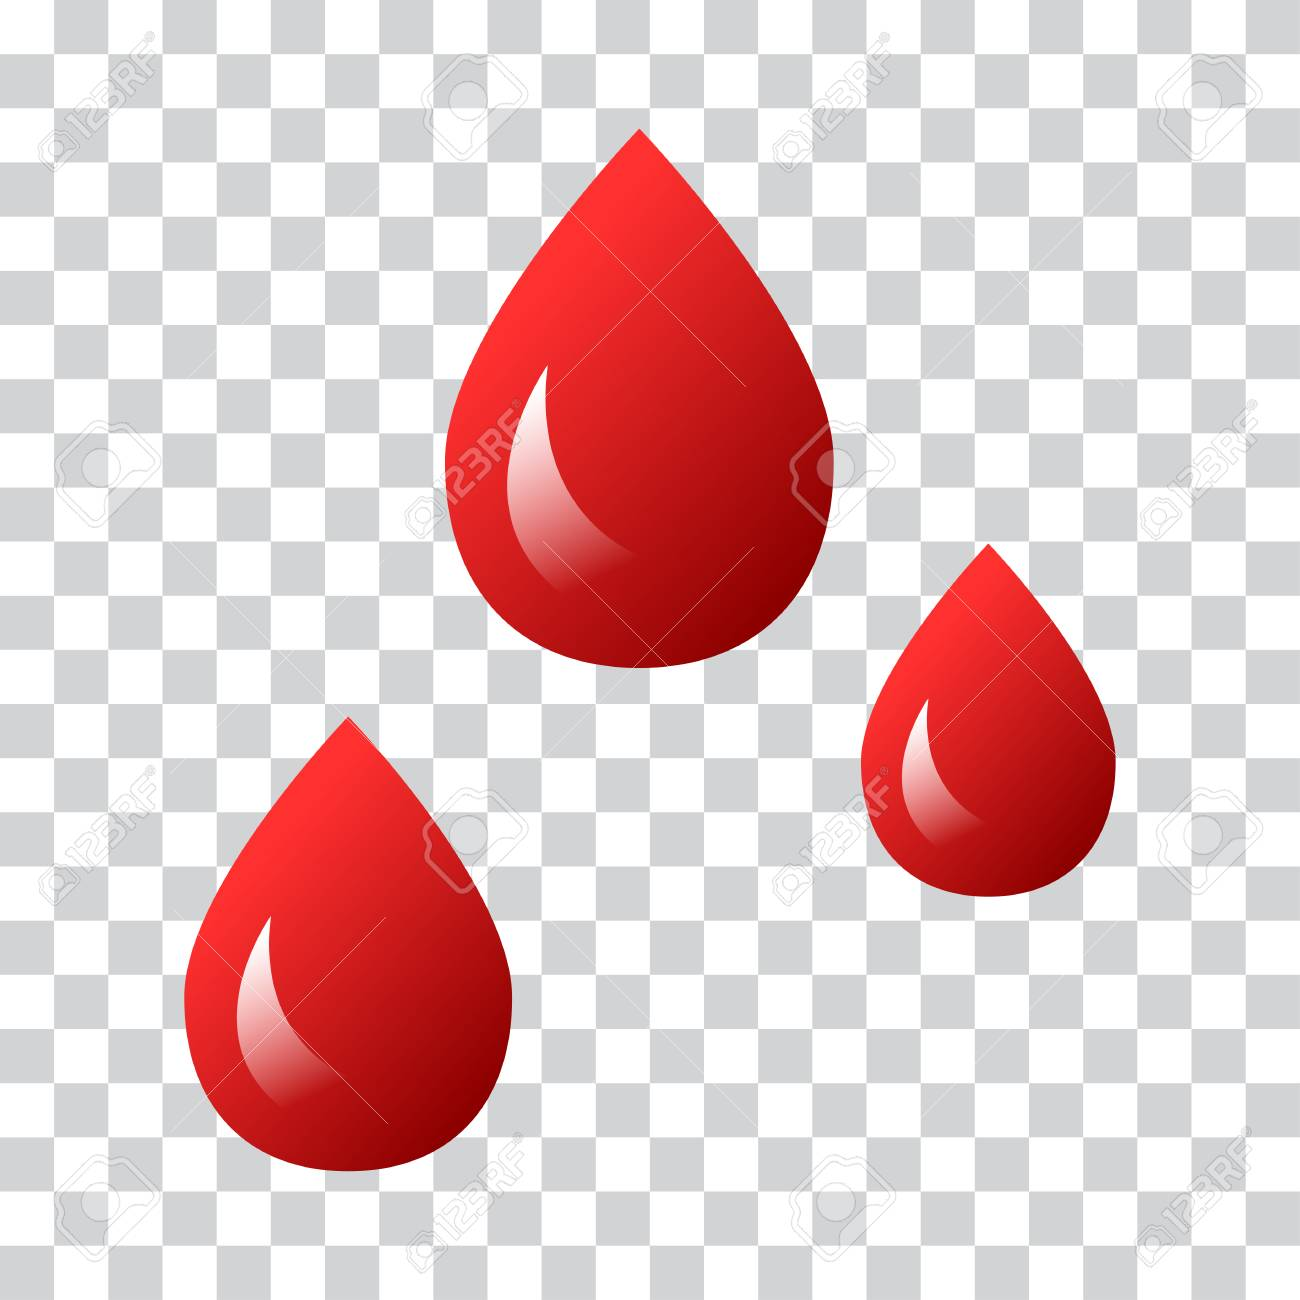 Blood Drop Transparent - Drops Of Blood Icon On Transparent Background Vector Illustration ...